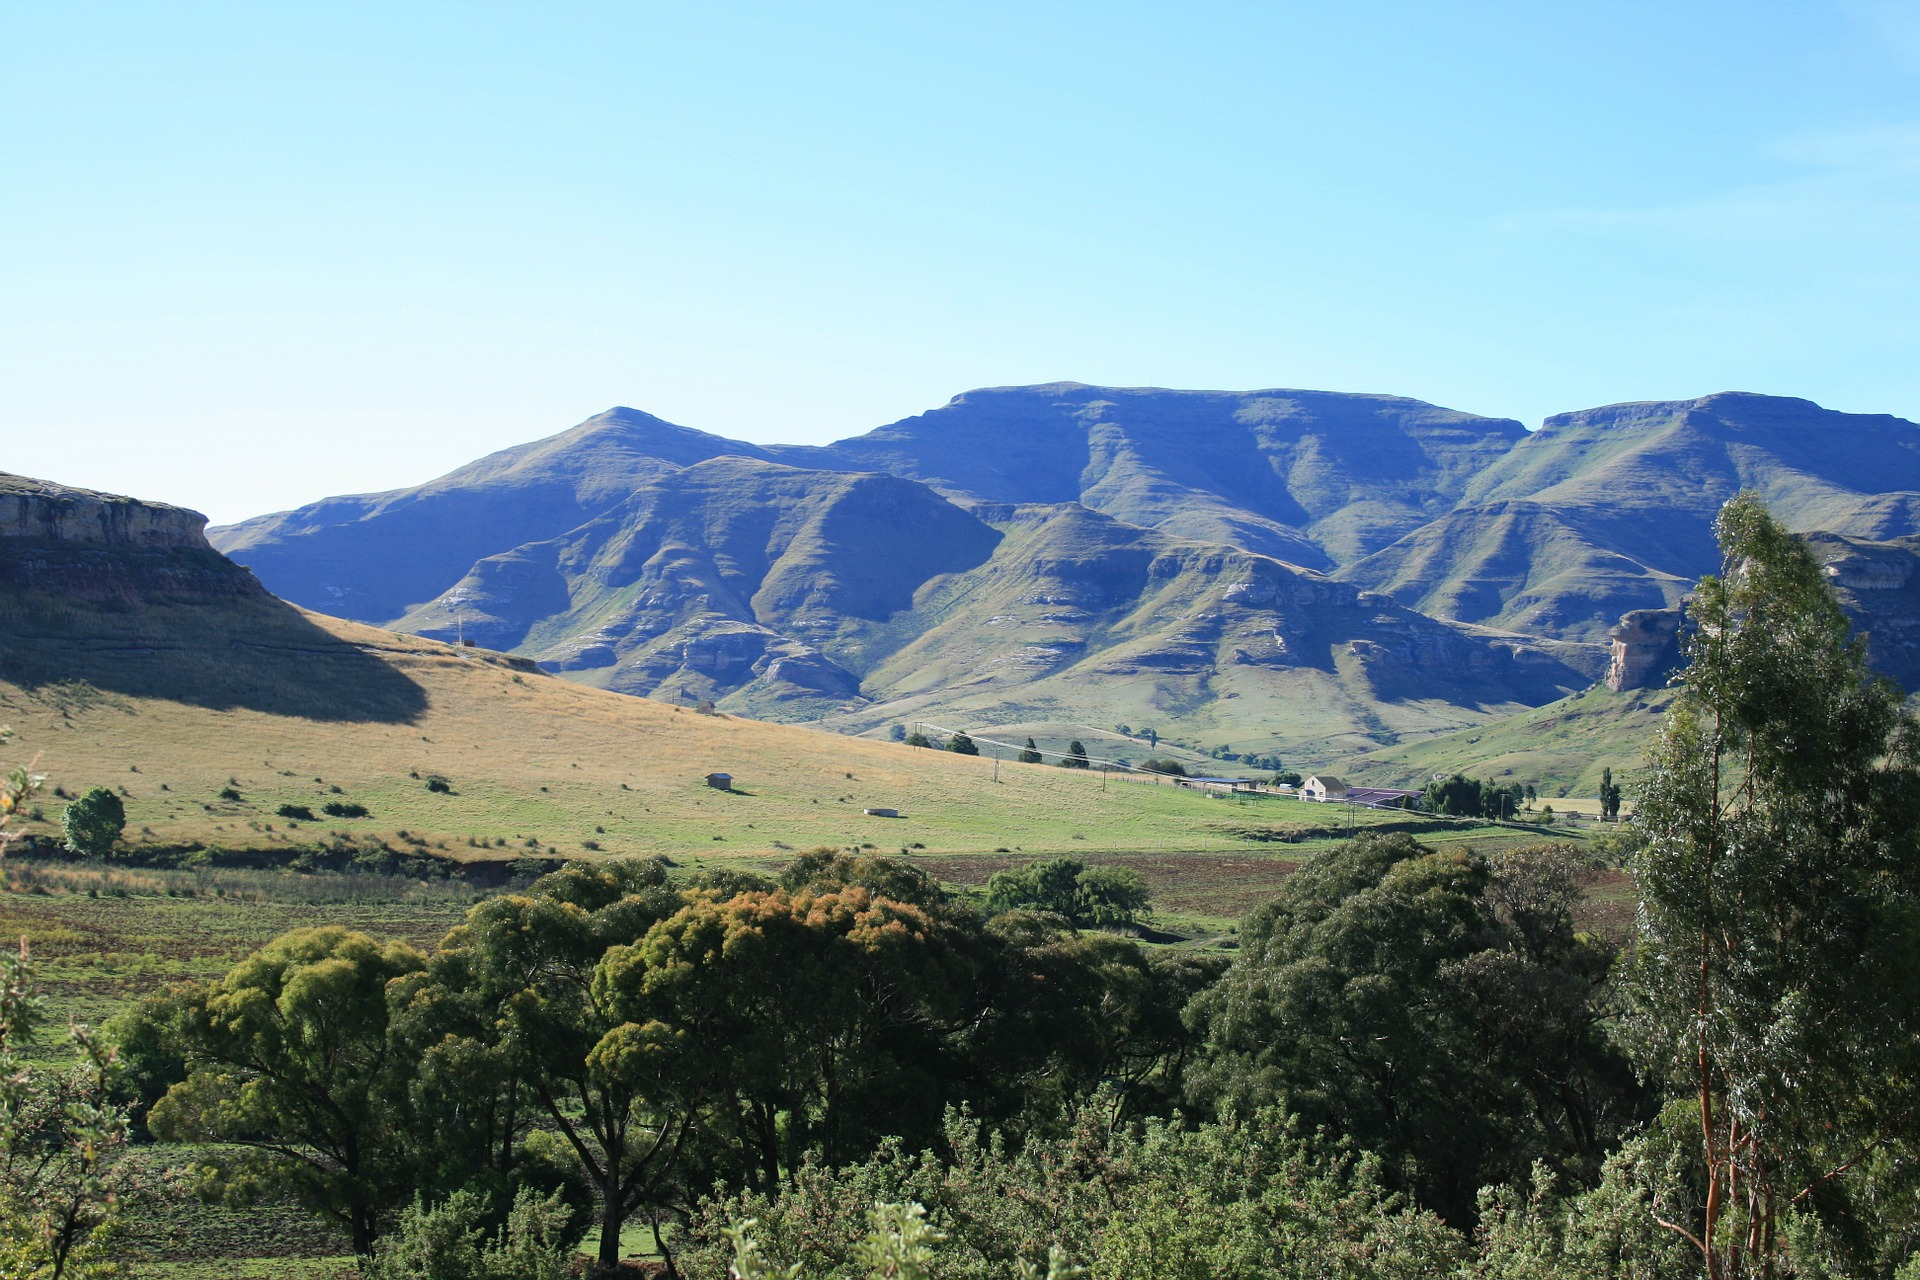 drakensberg-mountains-168213_1920